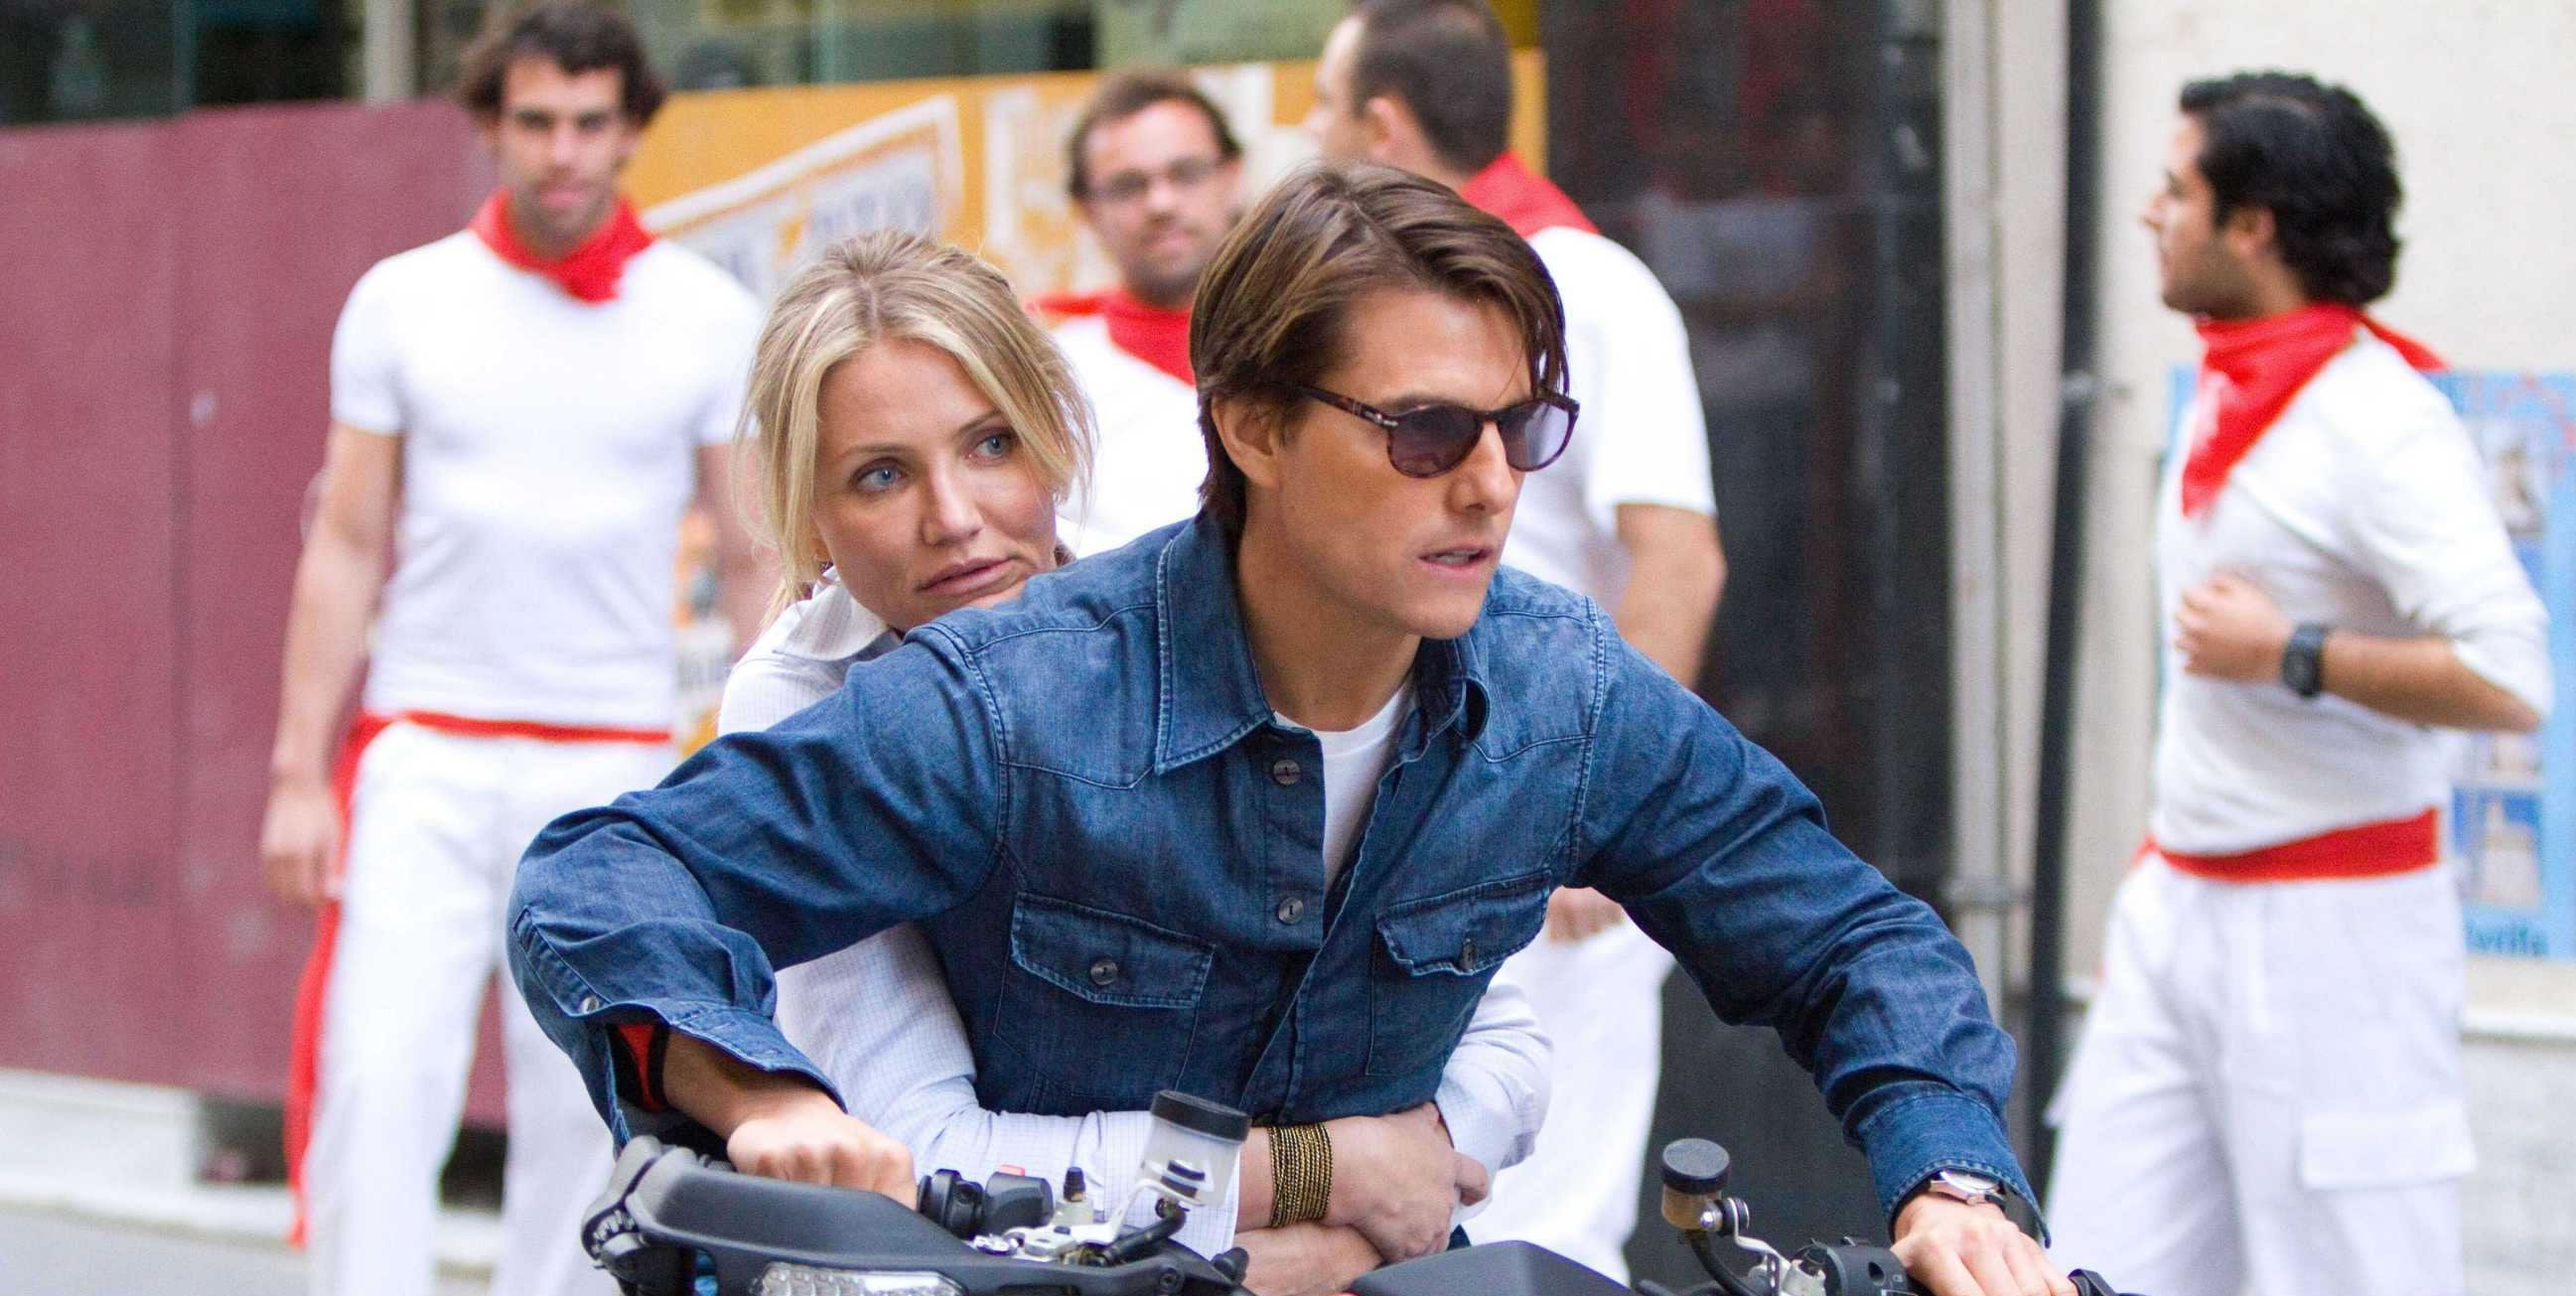 An image from Knight and Day